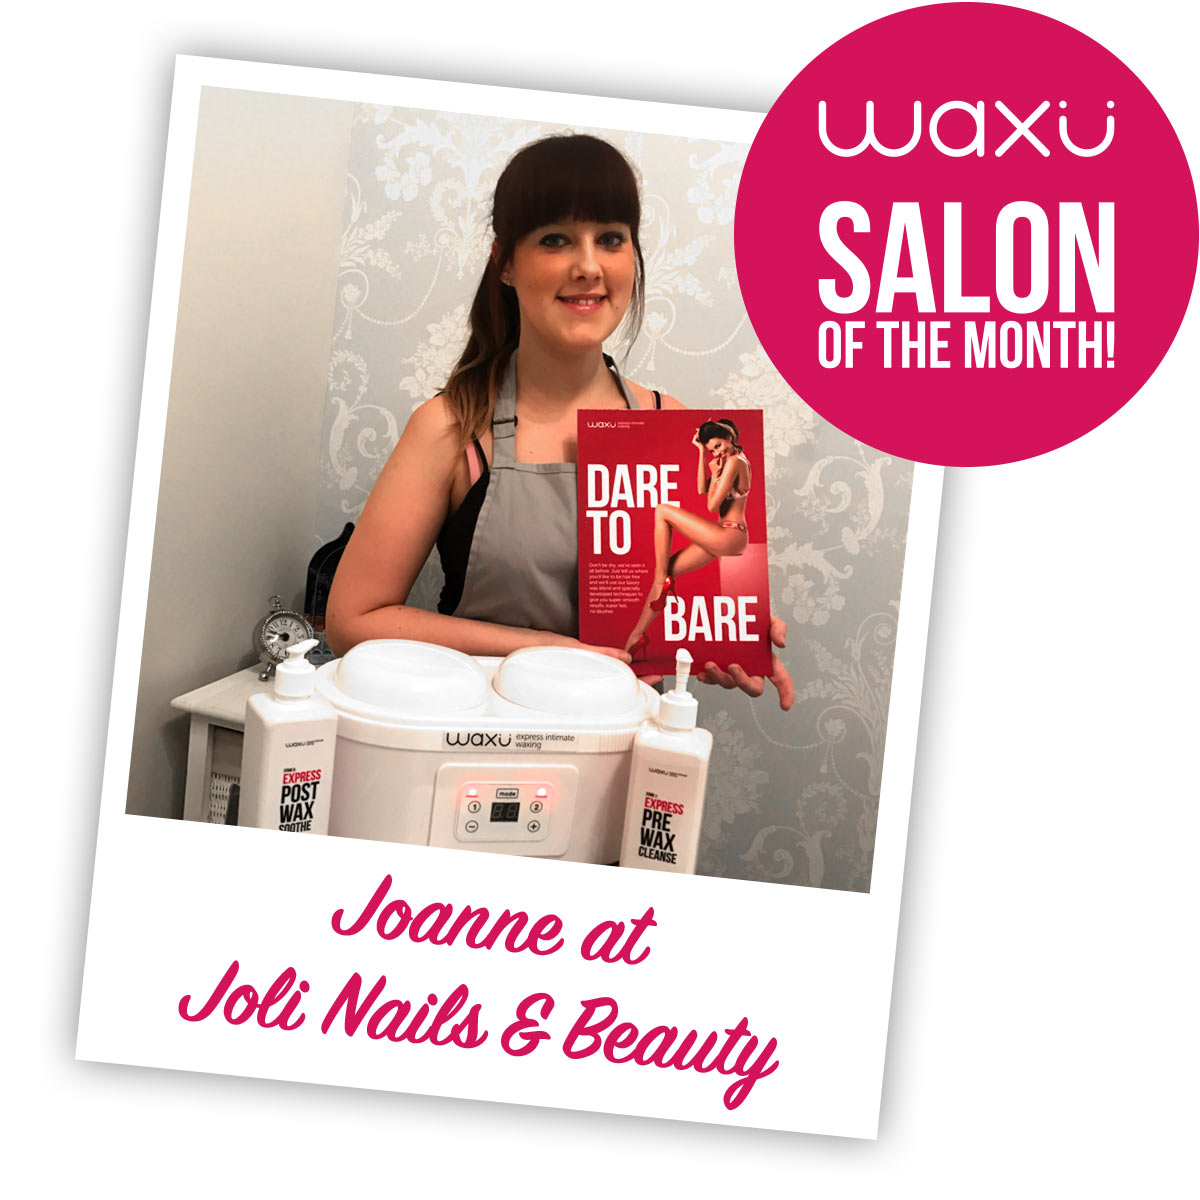 Waxu-Salon-of-the-Month-August-2017